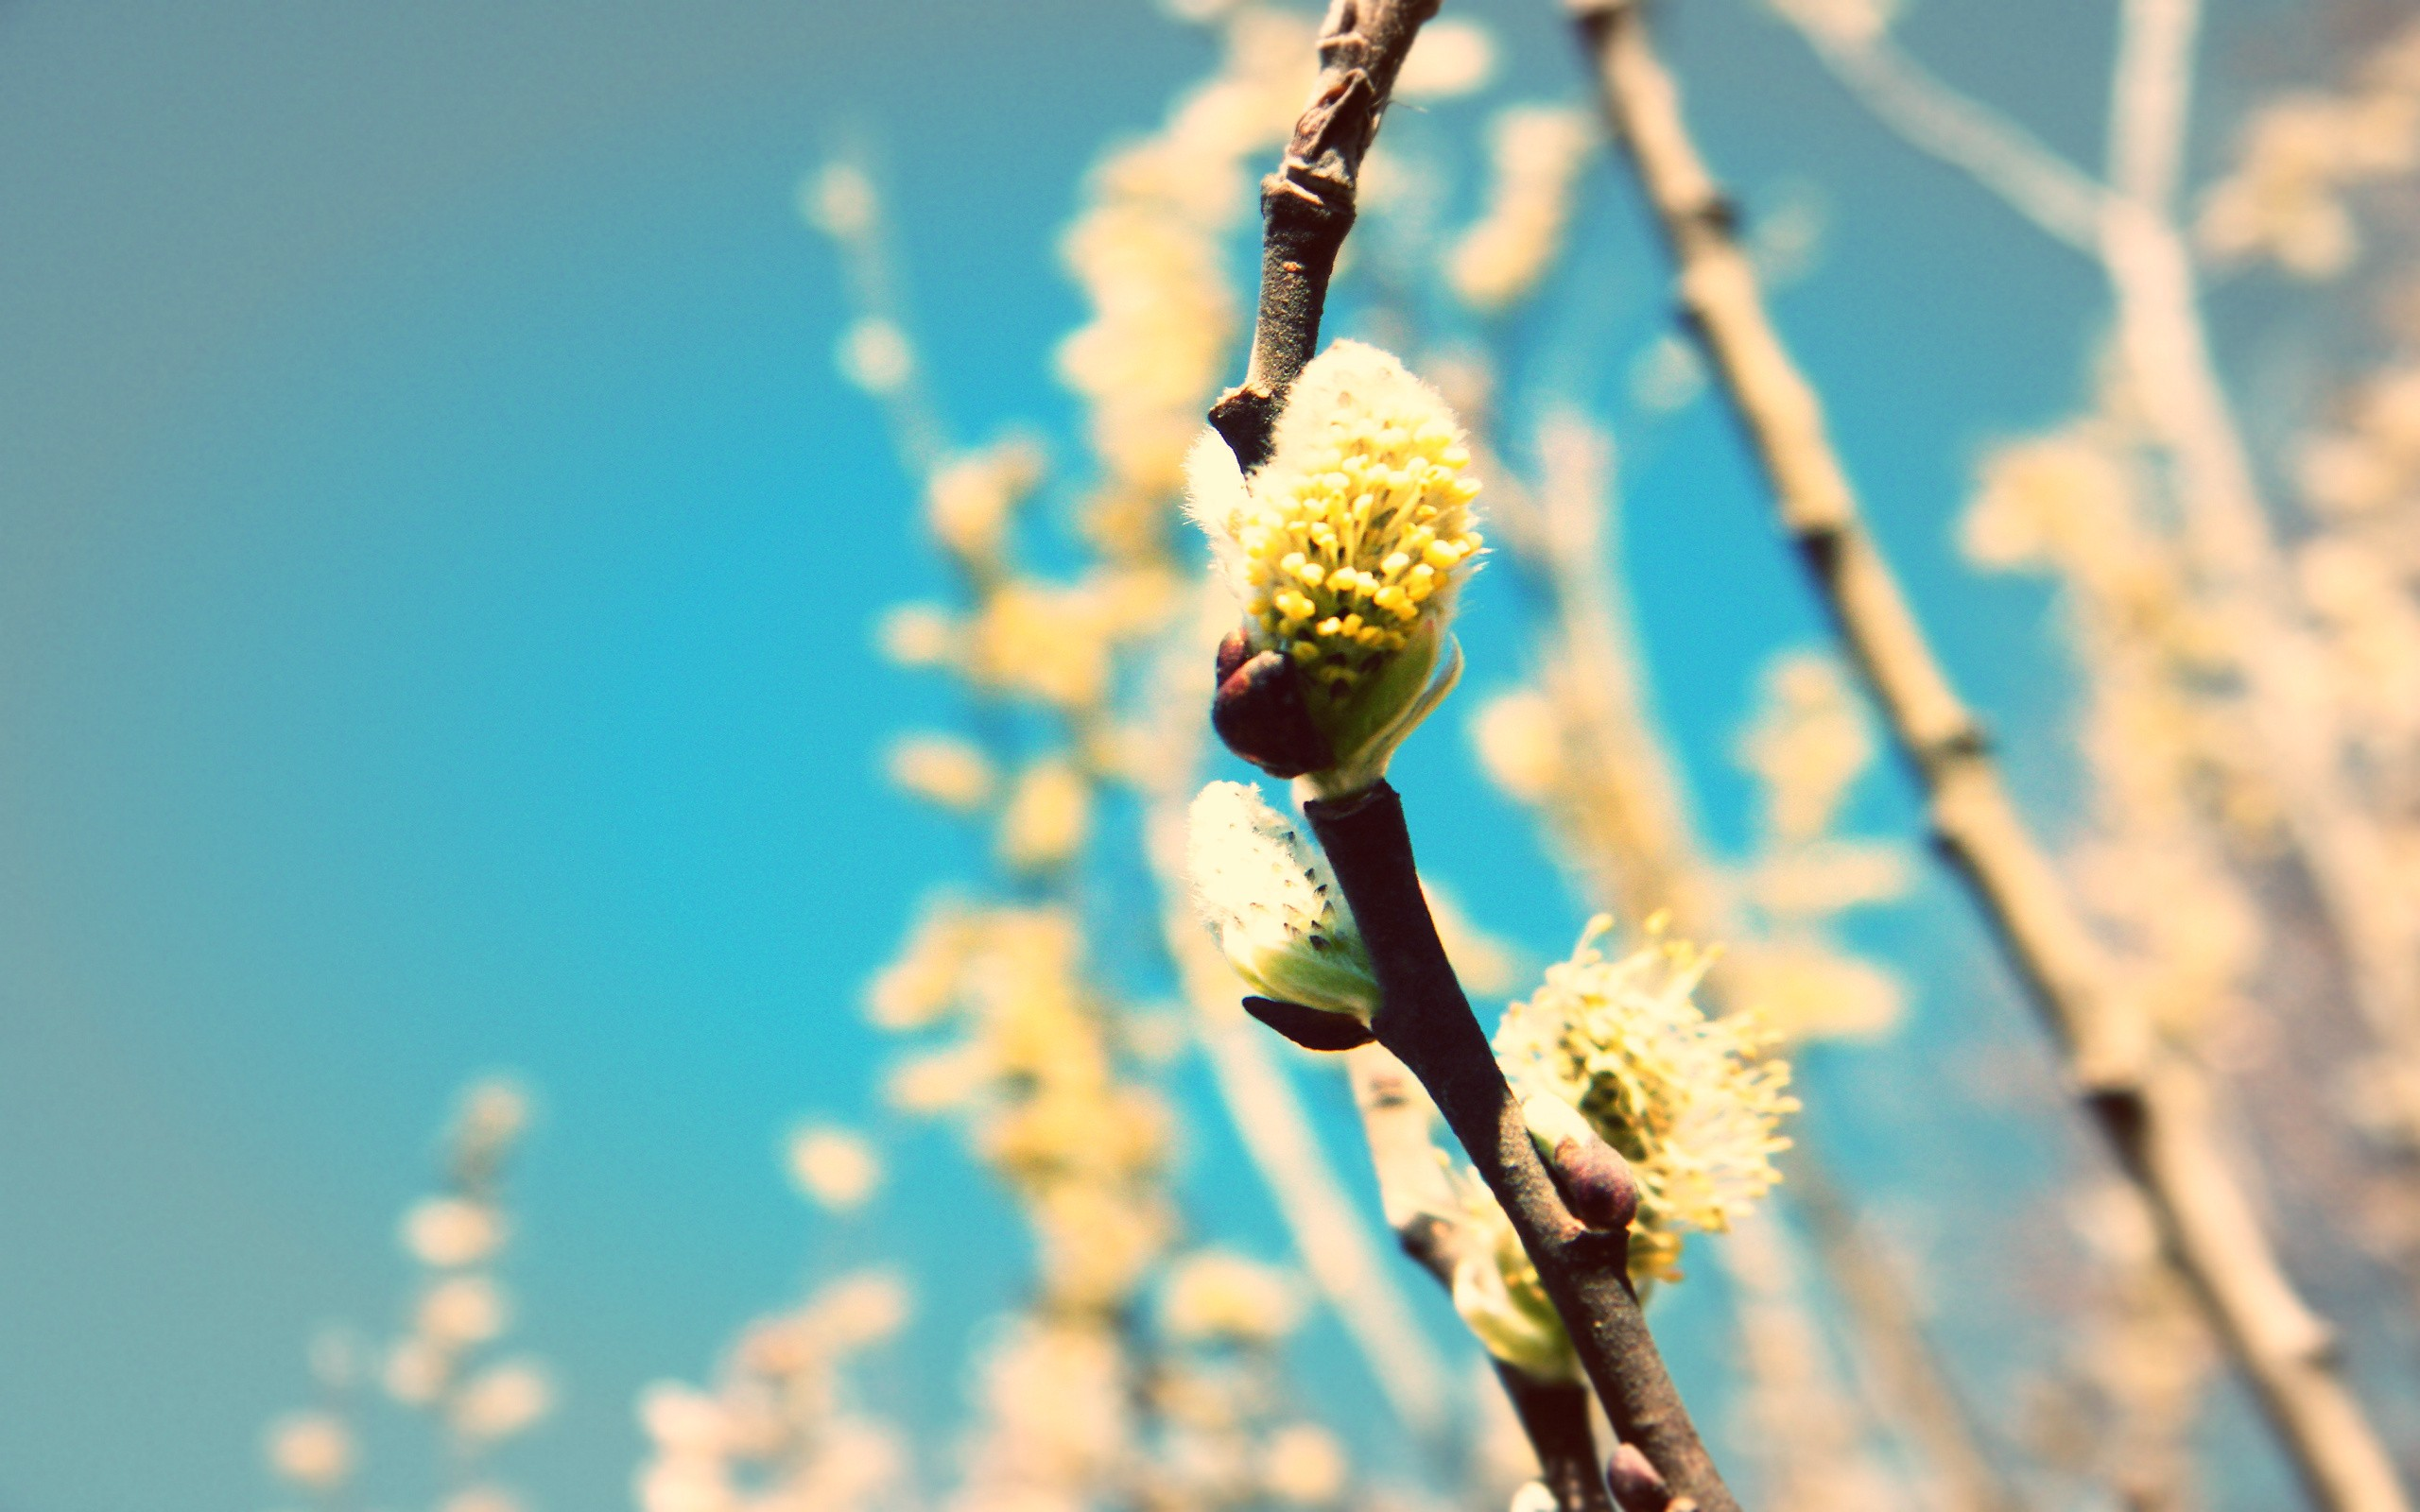 Spring Buds wallpapers Spring Buds stock photos 2560x1600